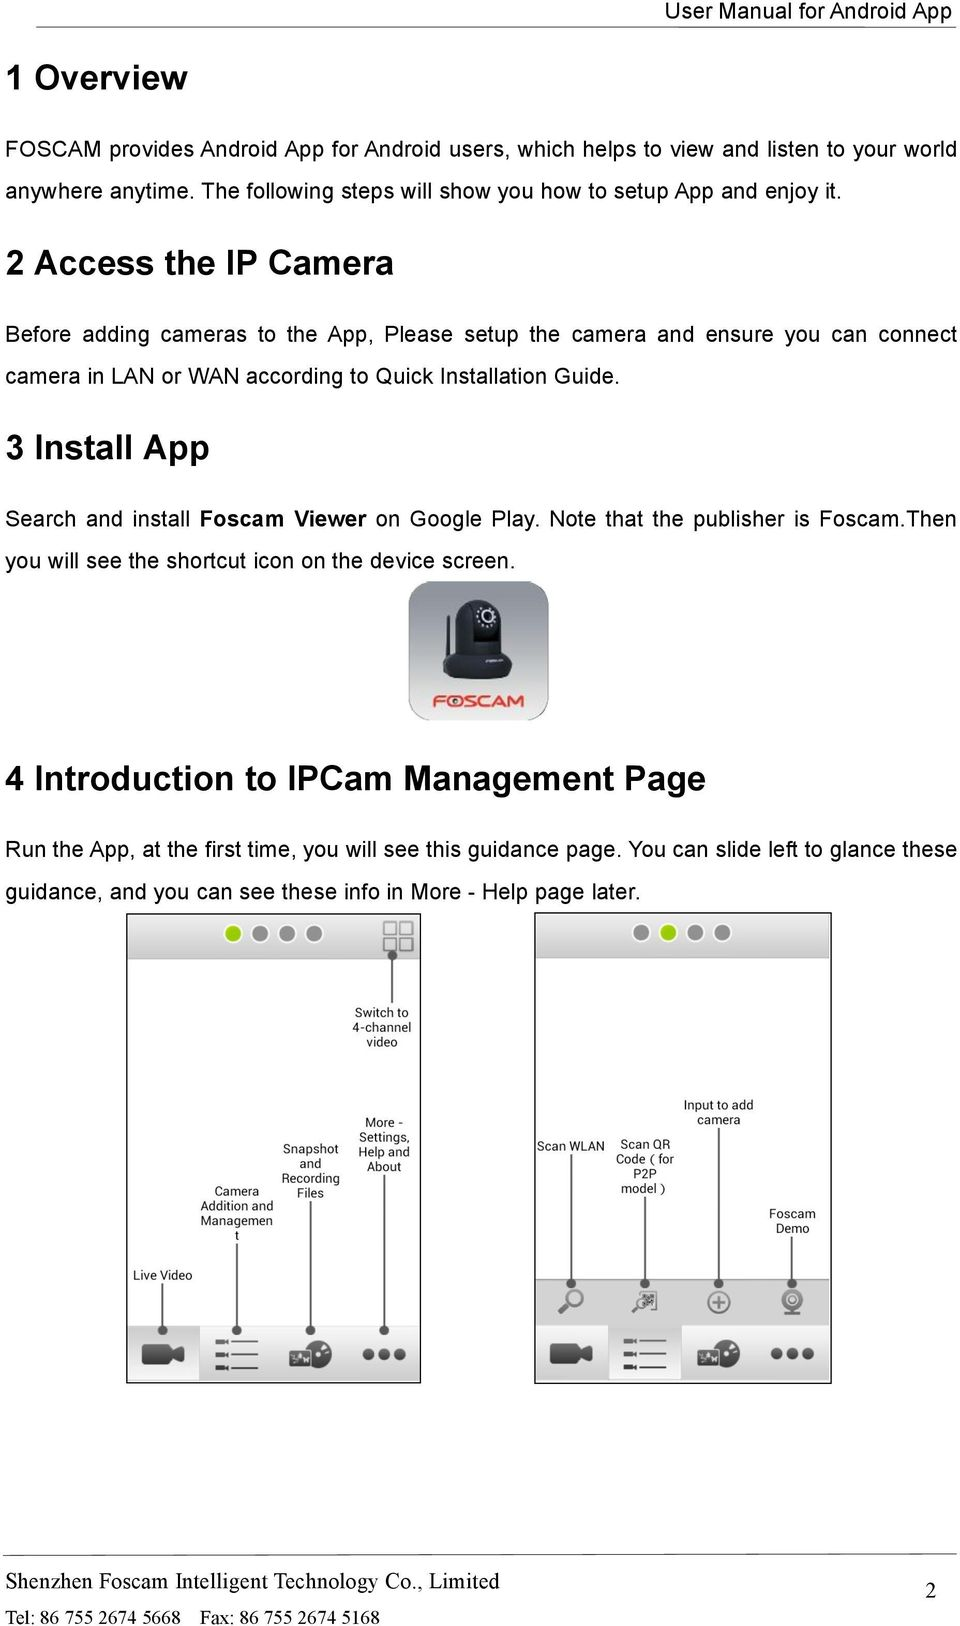 2 Access the IP Camera Before adding cameras to the App, Please setup the camera and ensure you can connect camera in LAN or WAN according to Quick Installation Guide.